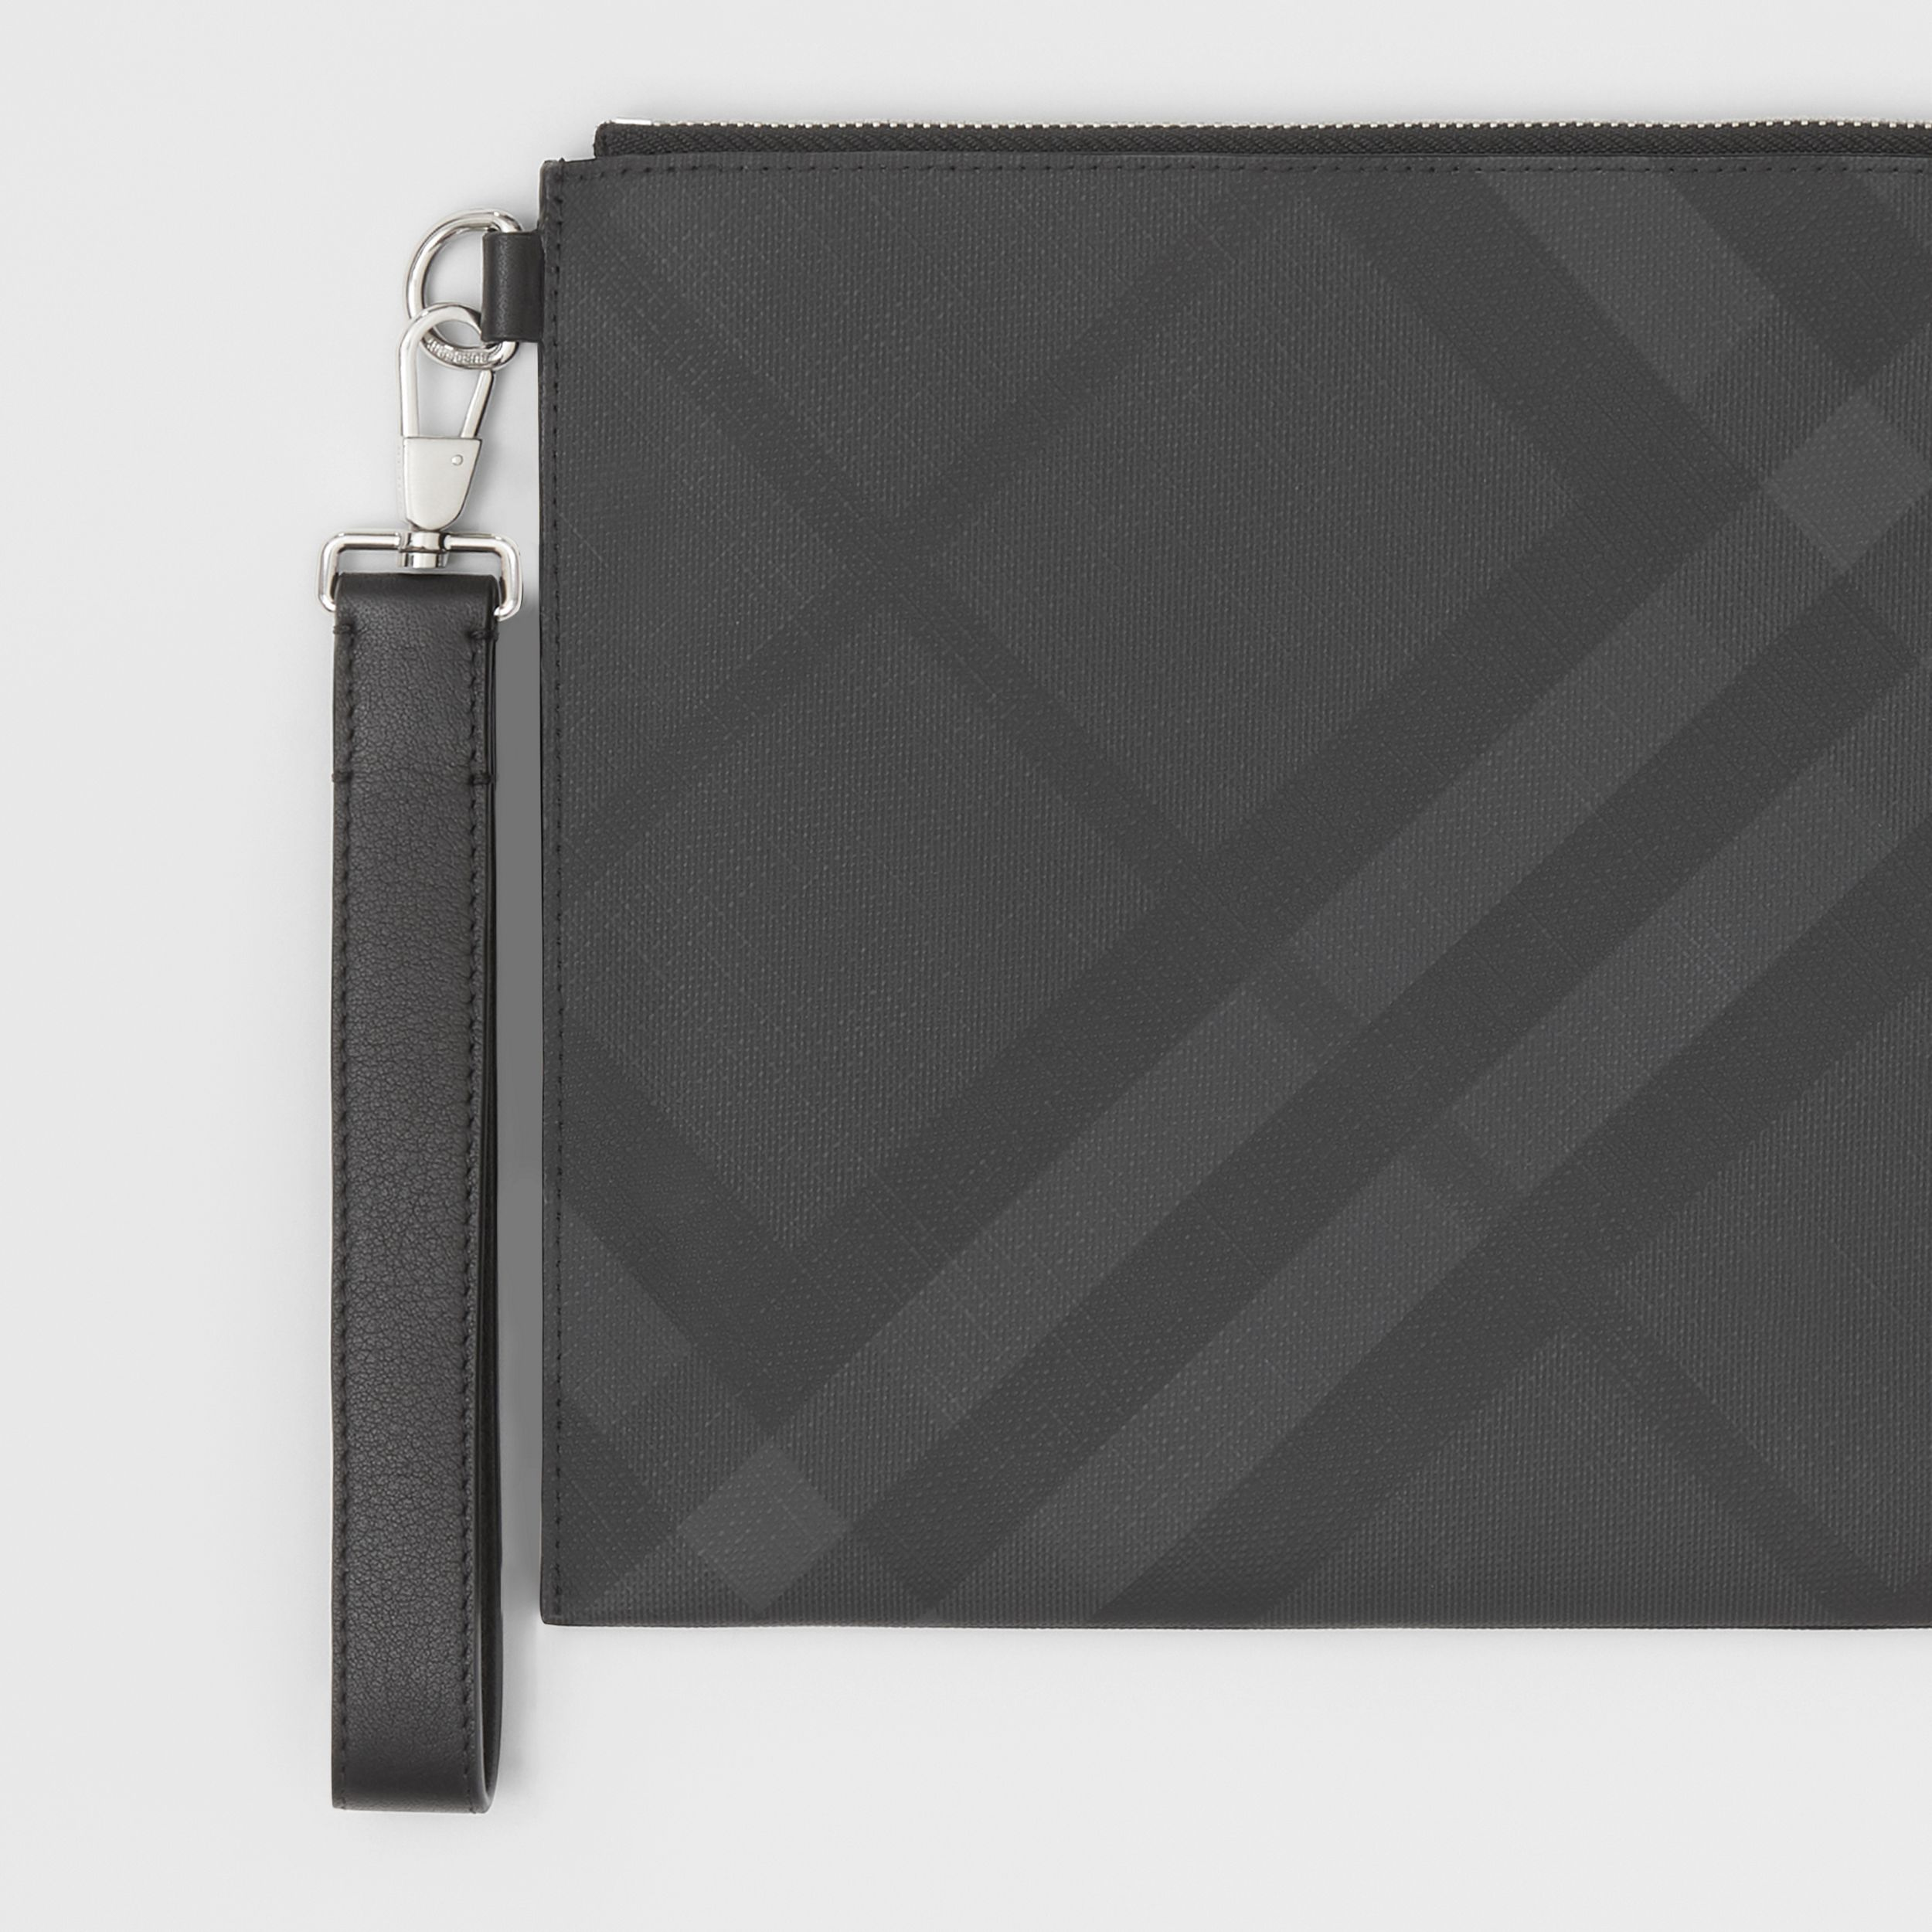 London Check and Leather Zip Pouch in Dark Charcoal - Men | Burberry Canada - 2